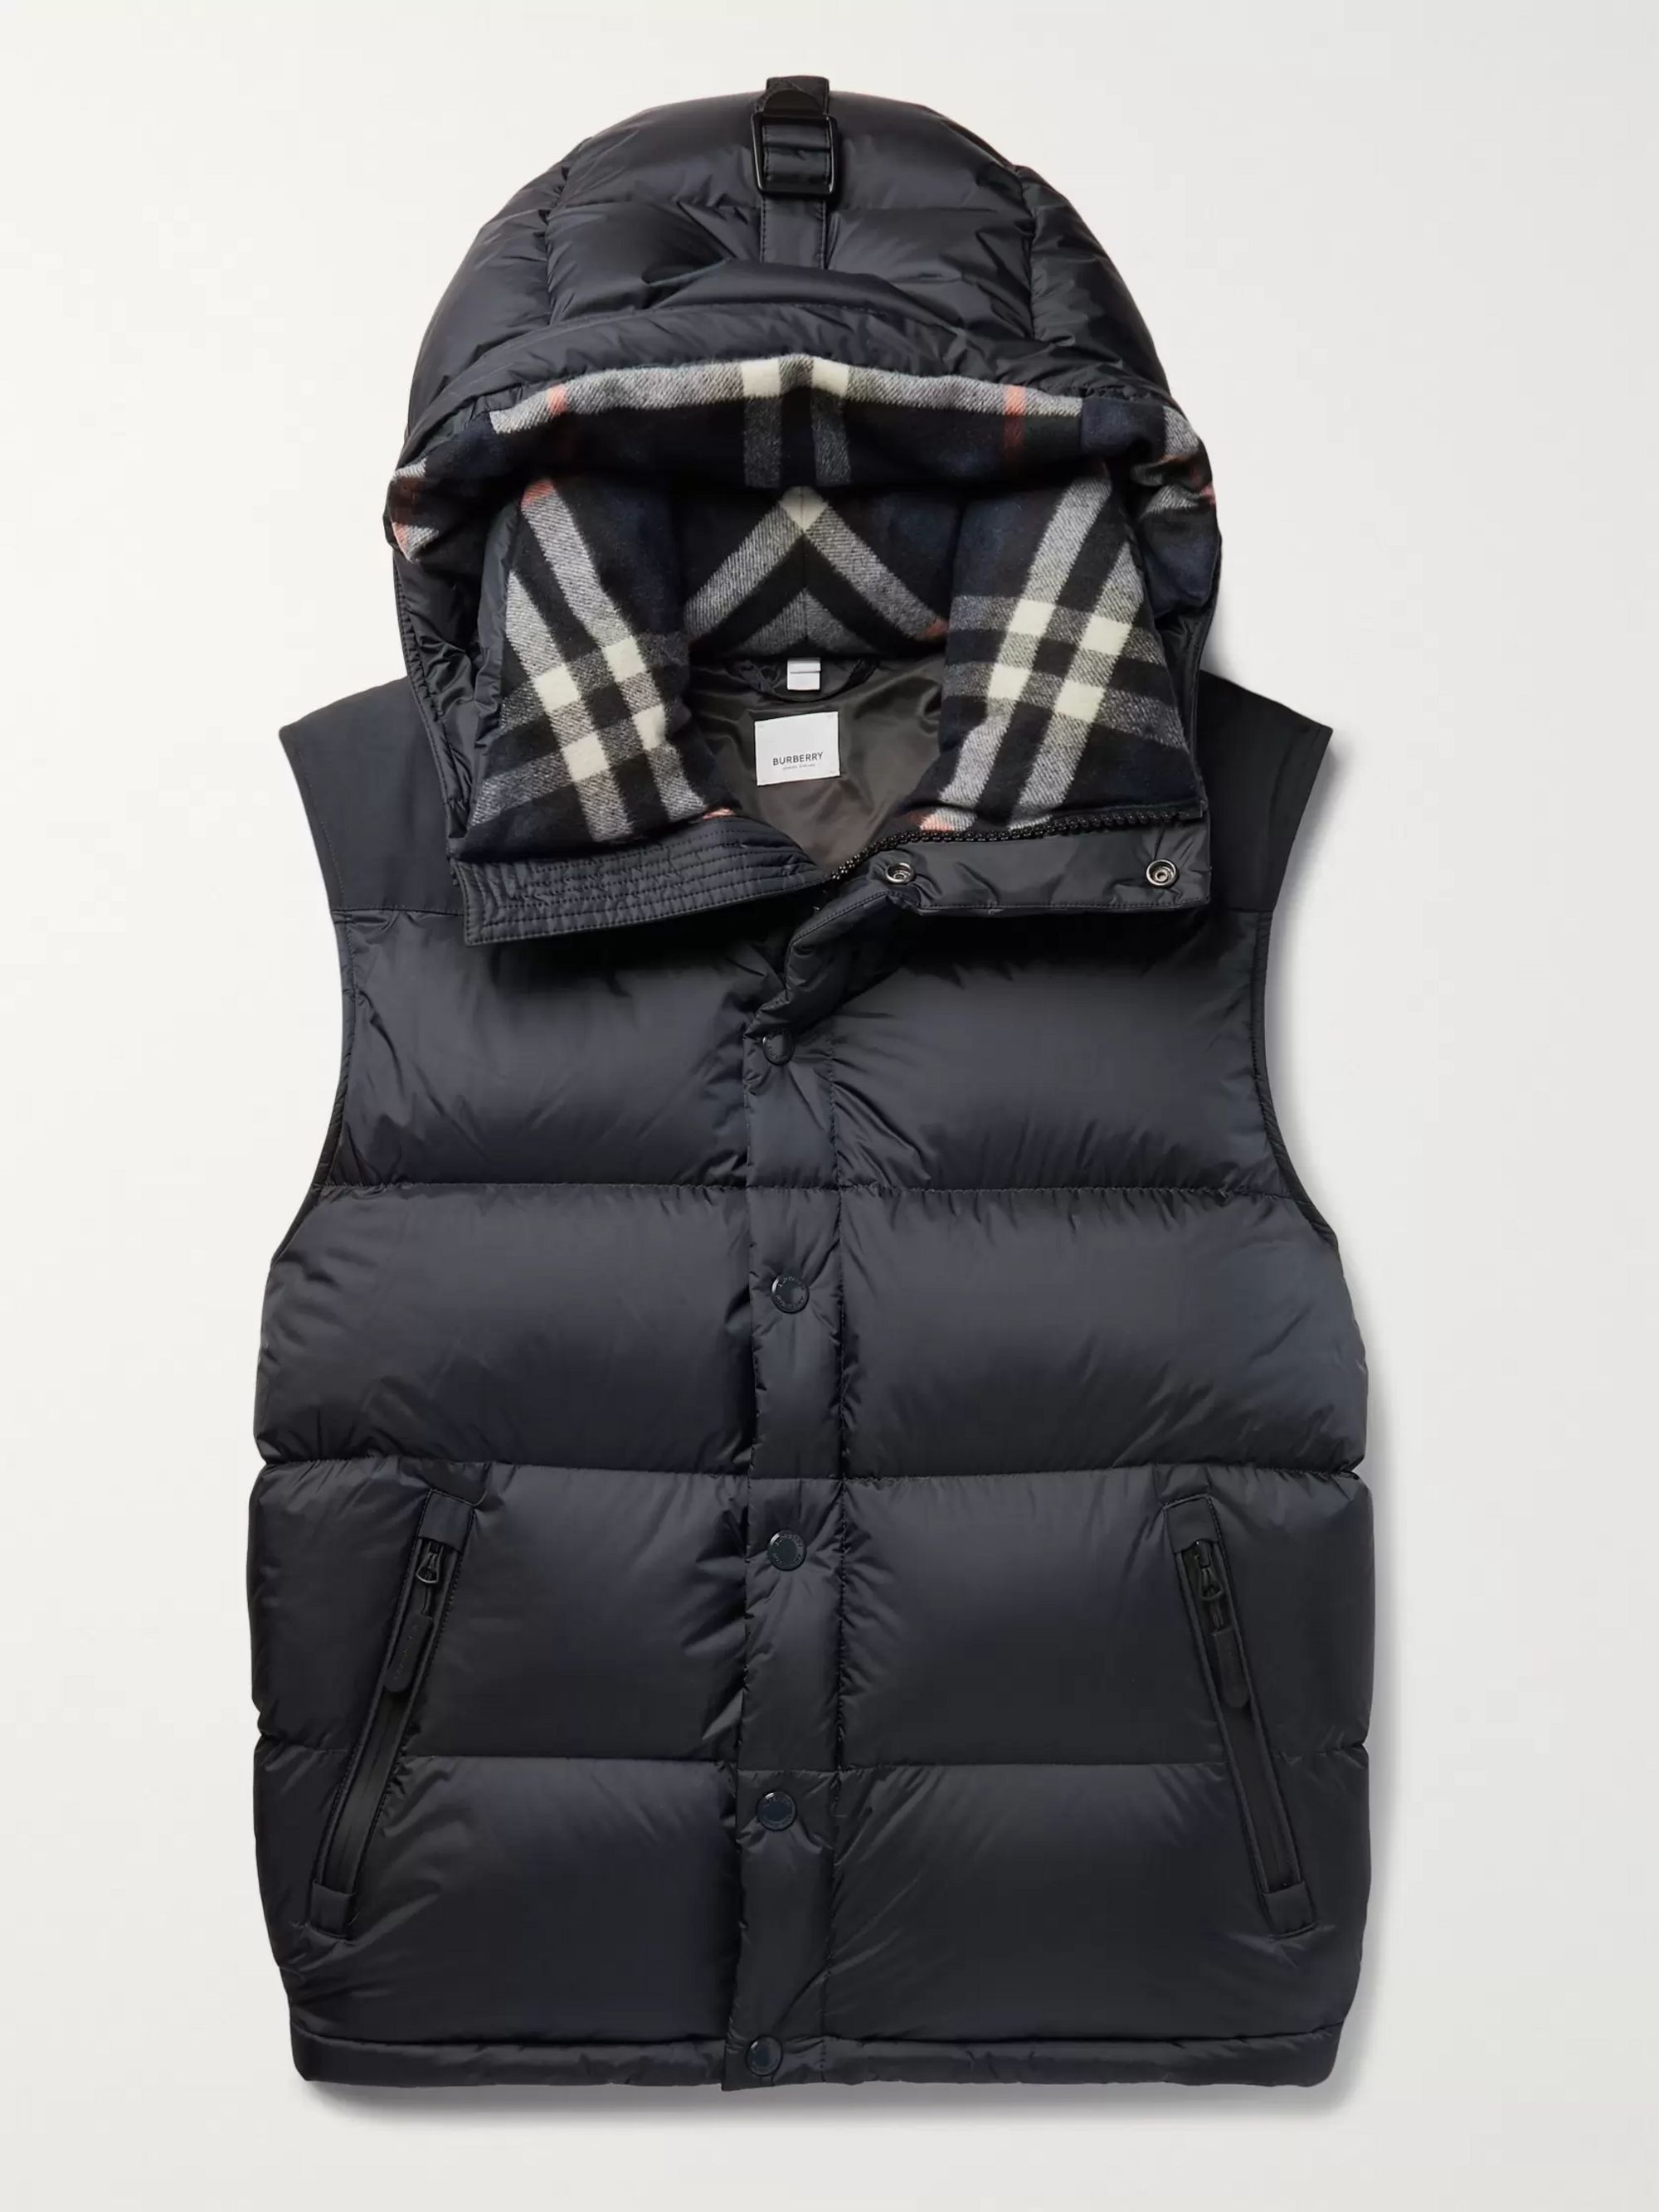 Burberry Hooded Quilted Nylon Down Jacket with Detachable Sleeves